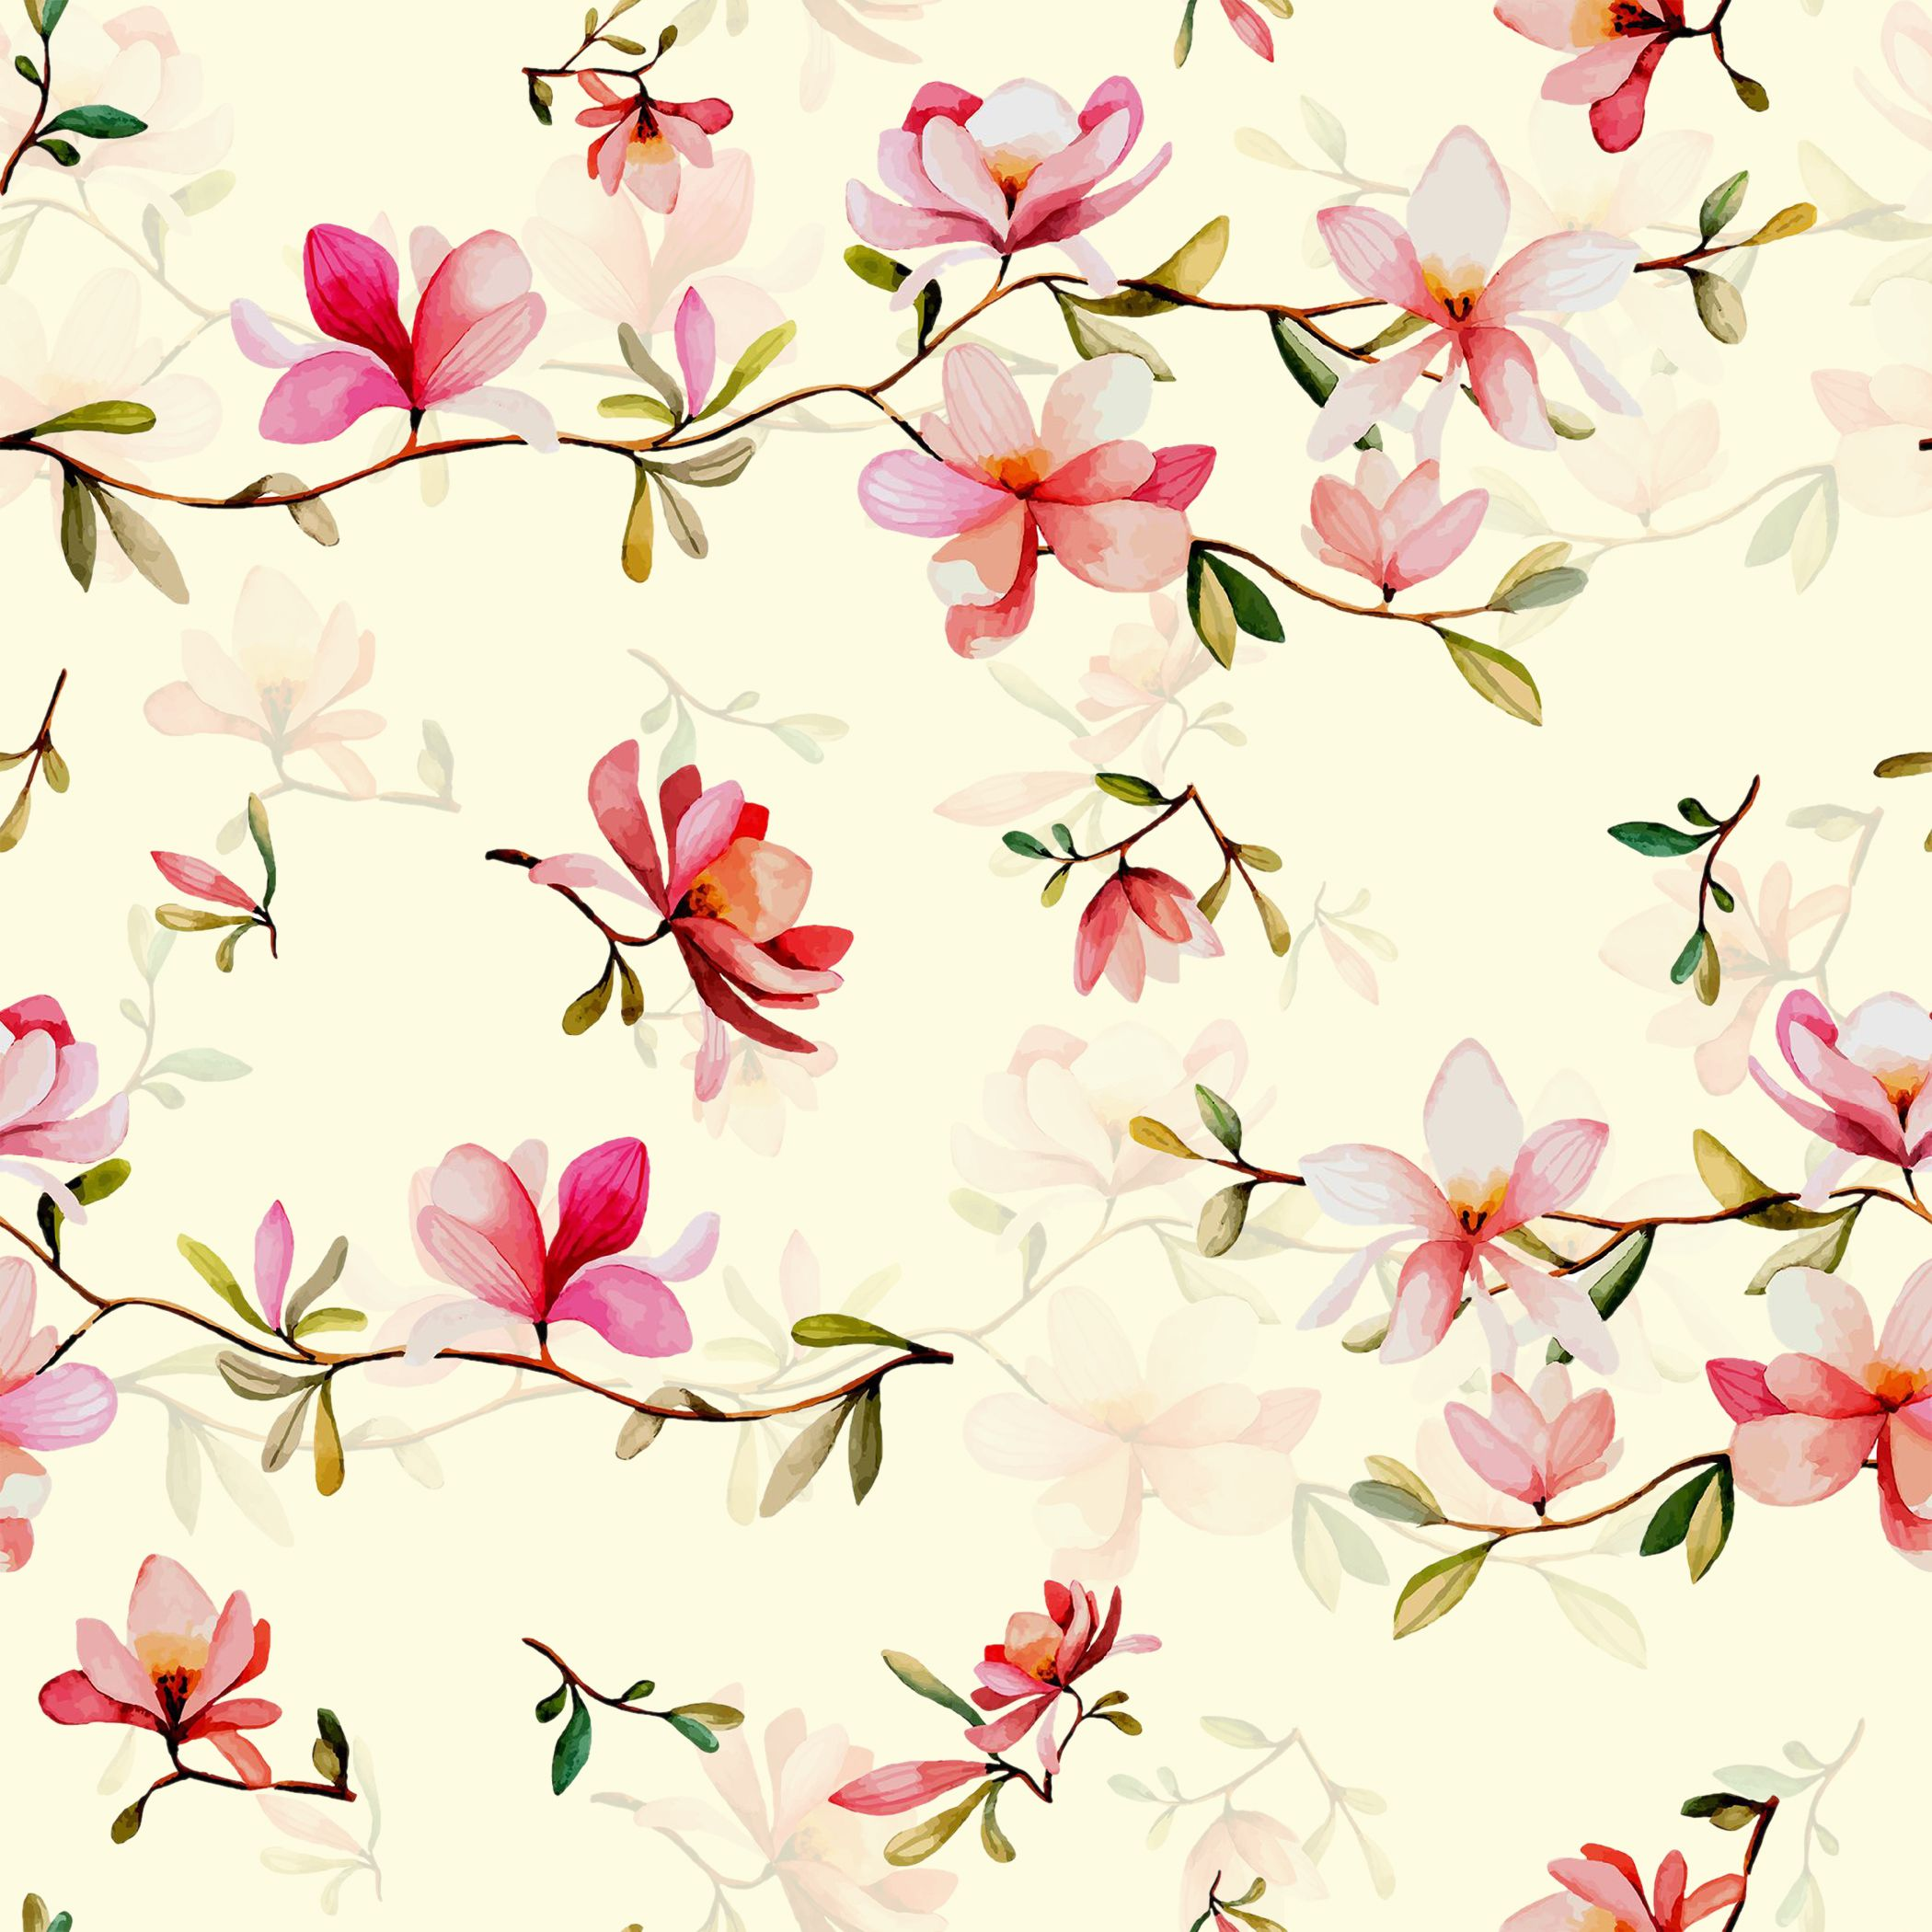 Pin by Salehi on Printsشهرام Flower wallpaper, Flower